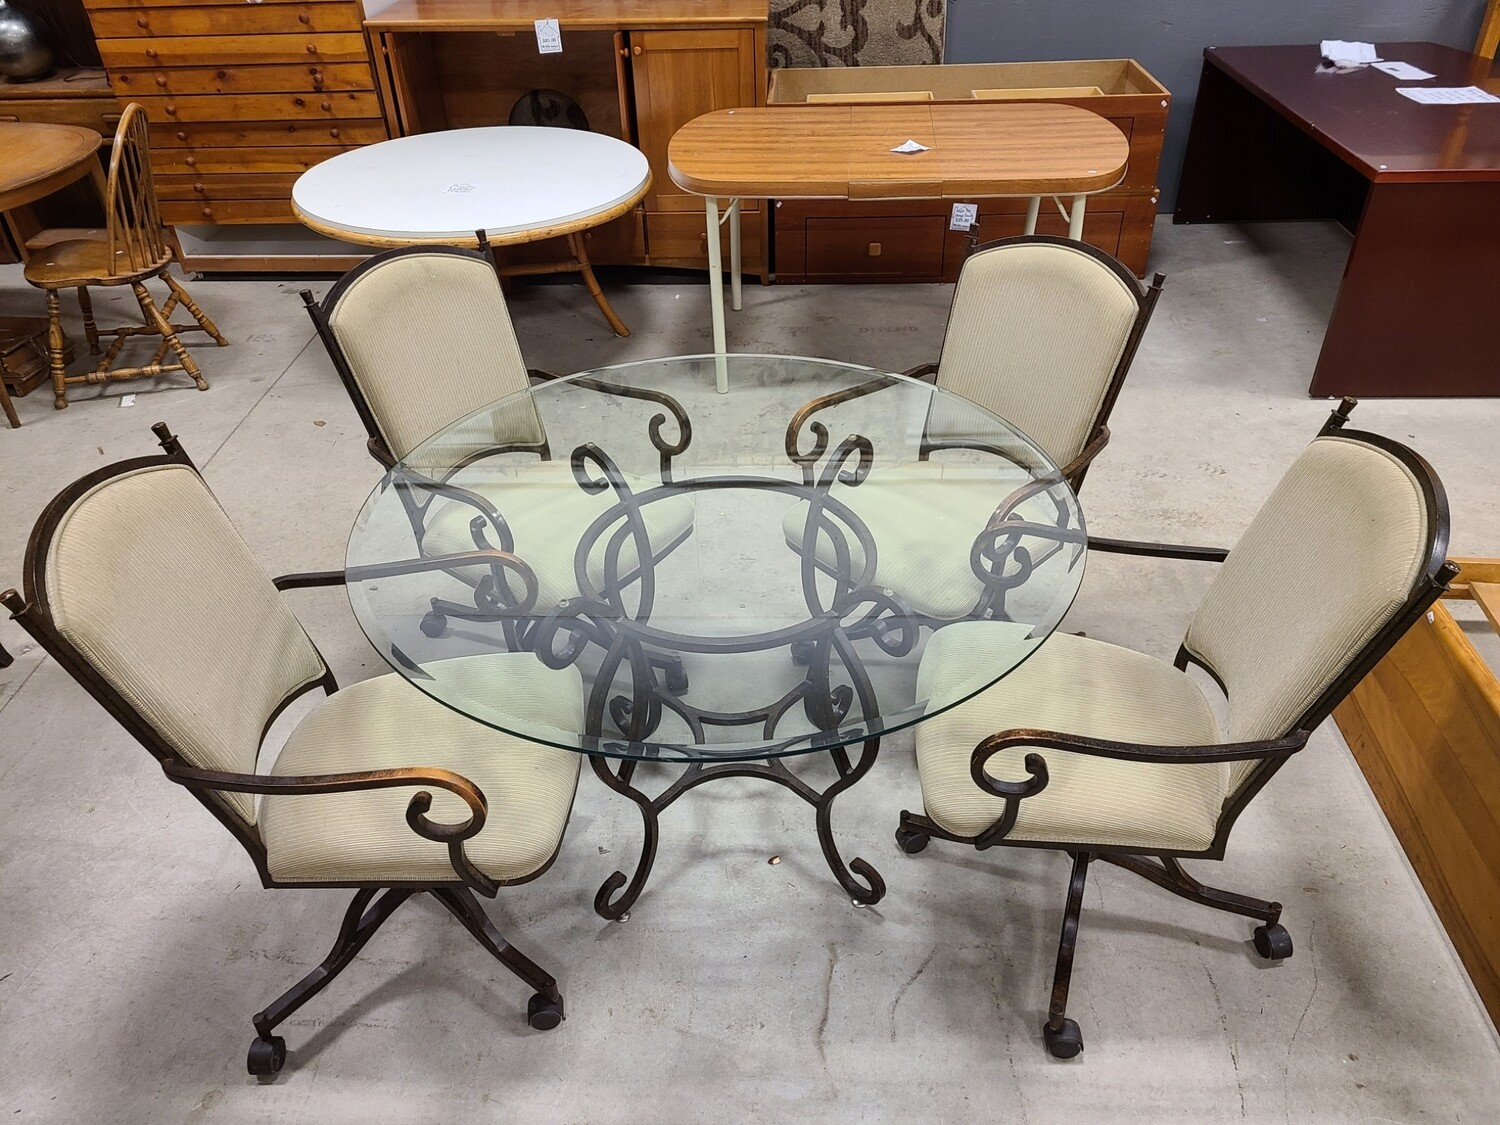 Glass Table w/ 4 Chairs